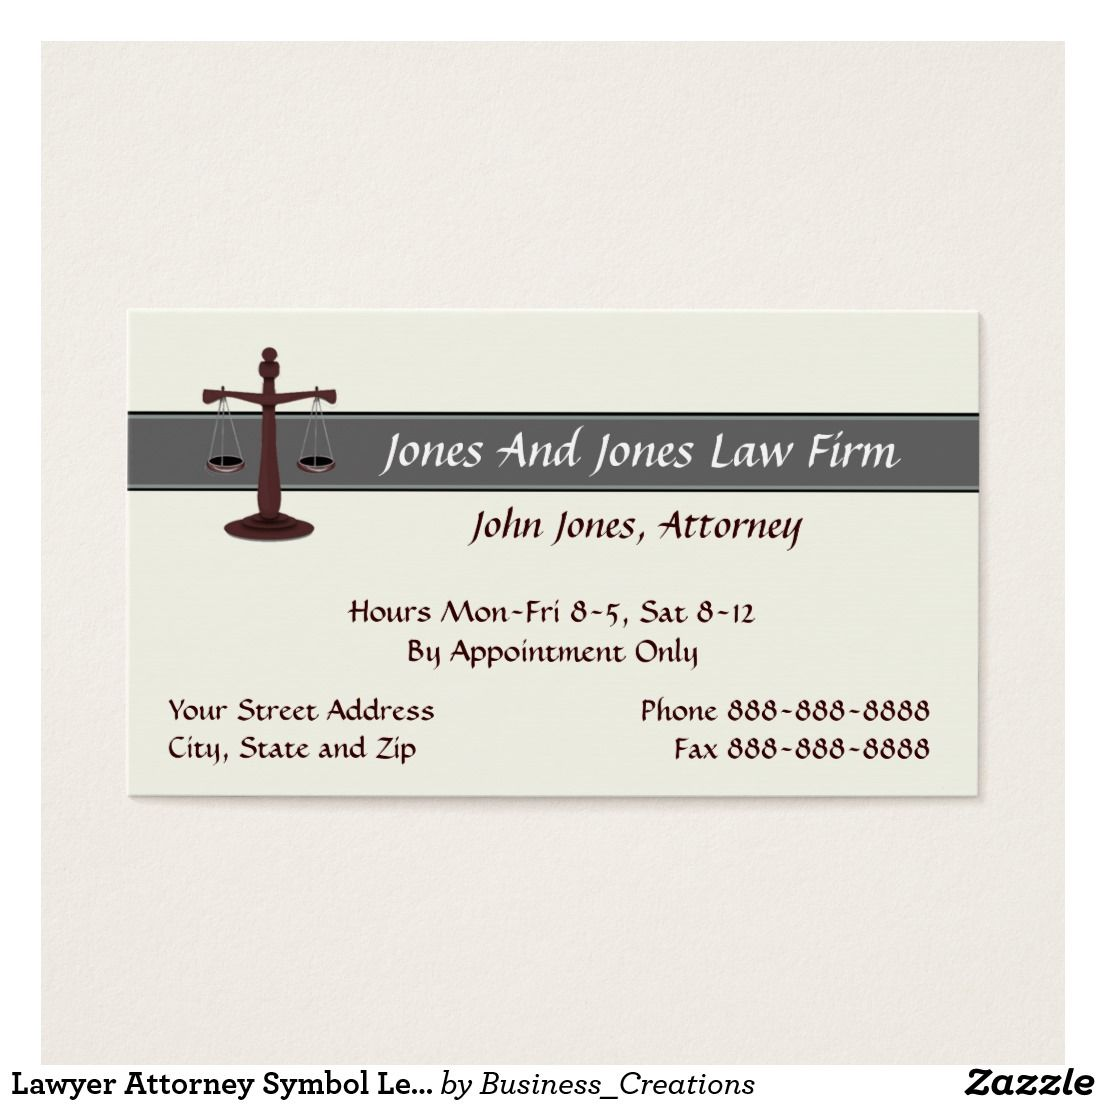 Lawyer attorney symbol legal business card custom check out more lawyer attorney symbol legal business card custom check out more business card designs at http reheart Images